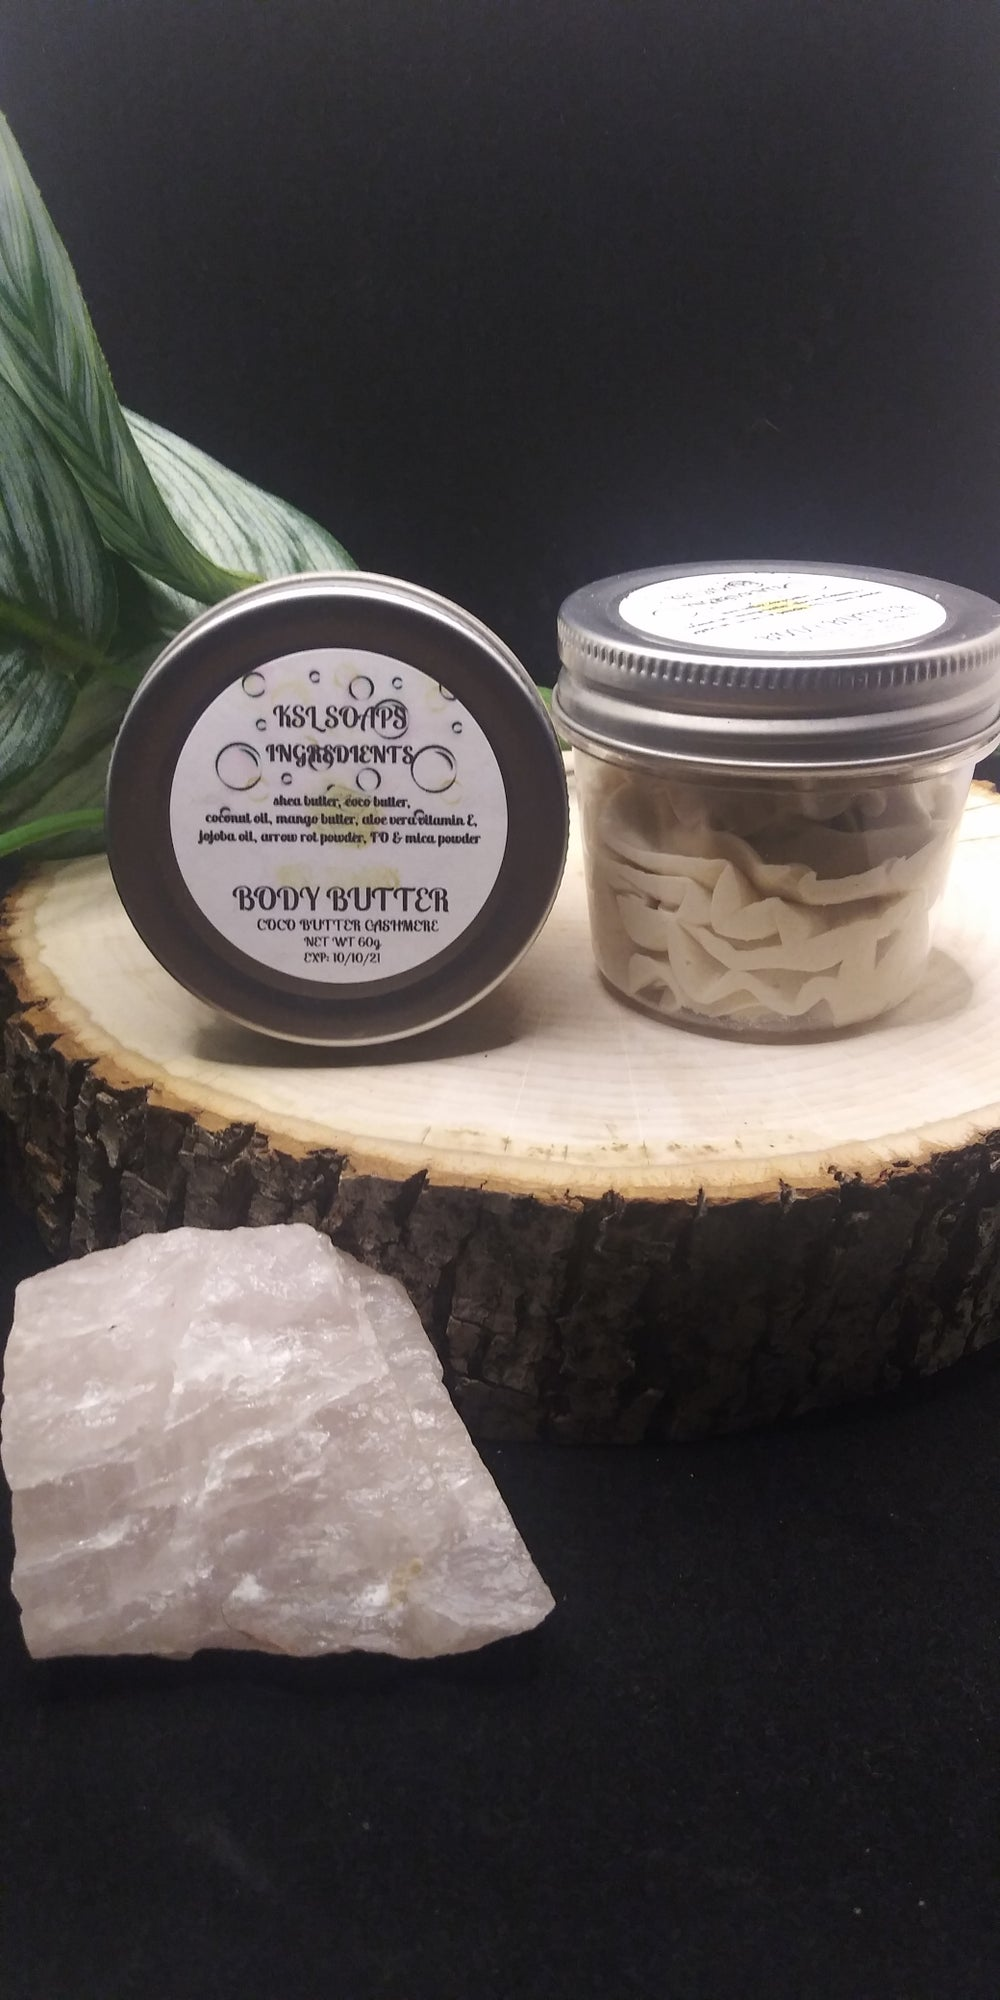 COCO BUTTER CASHMERE BODY BUTTER